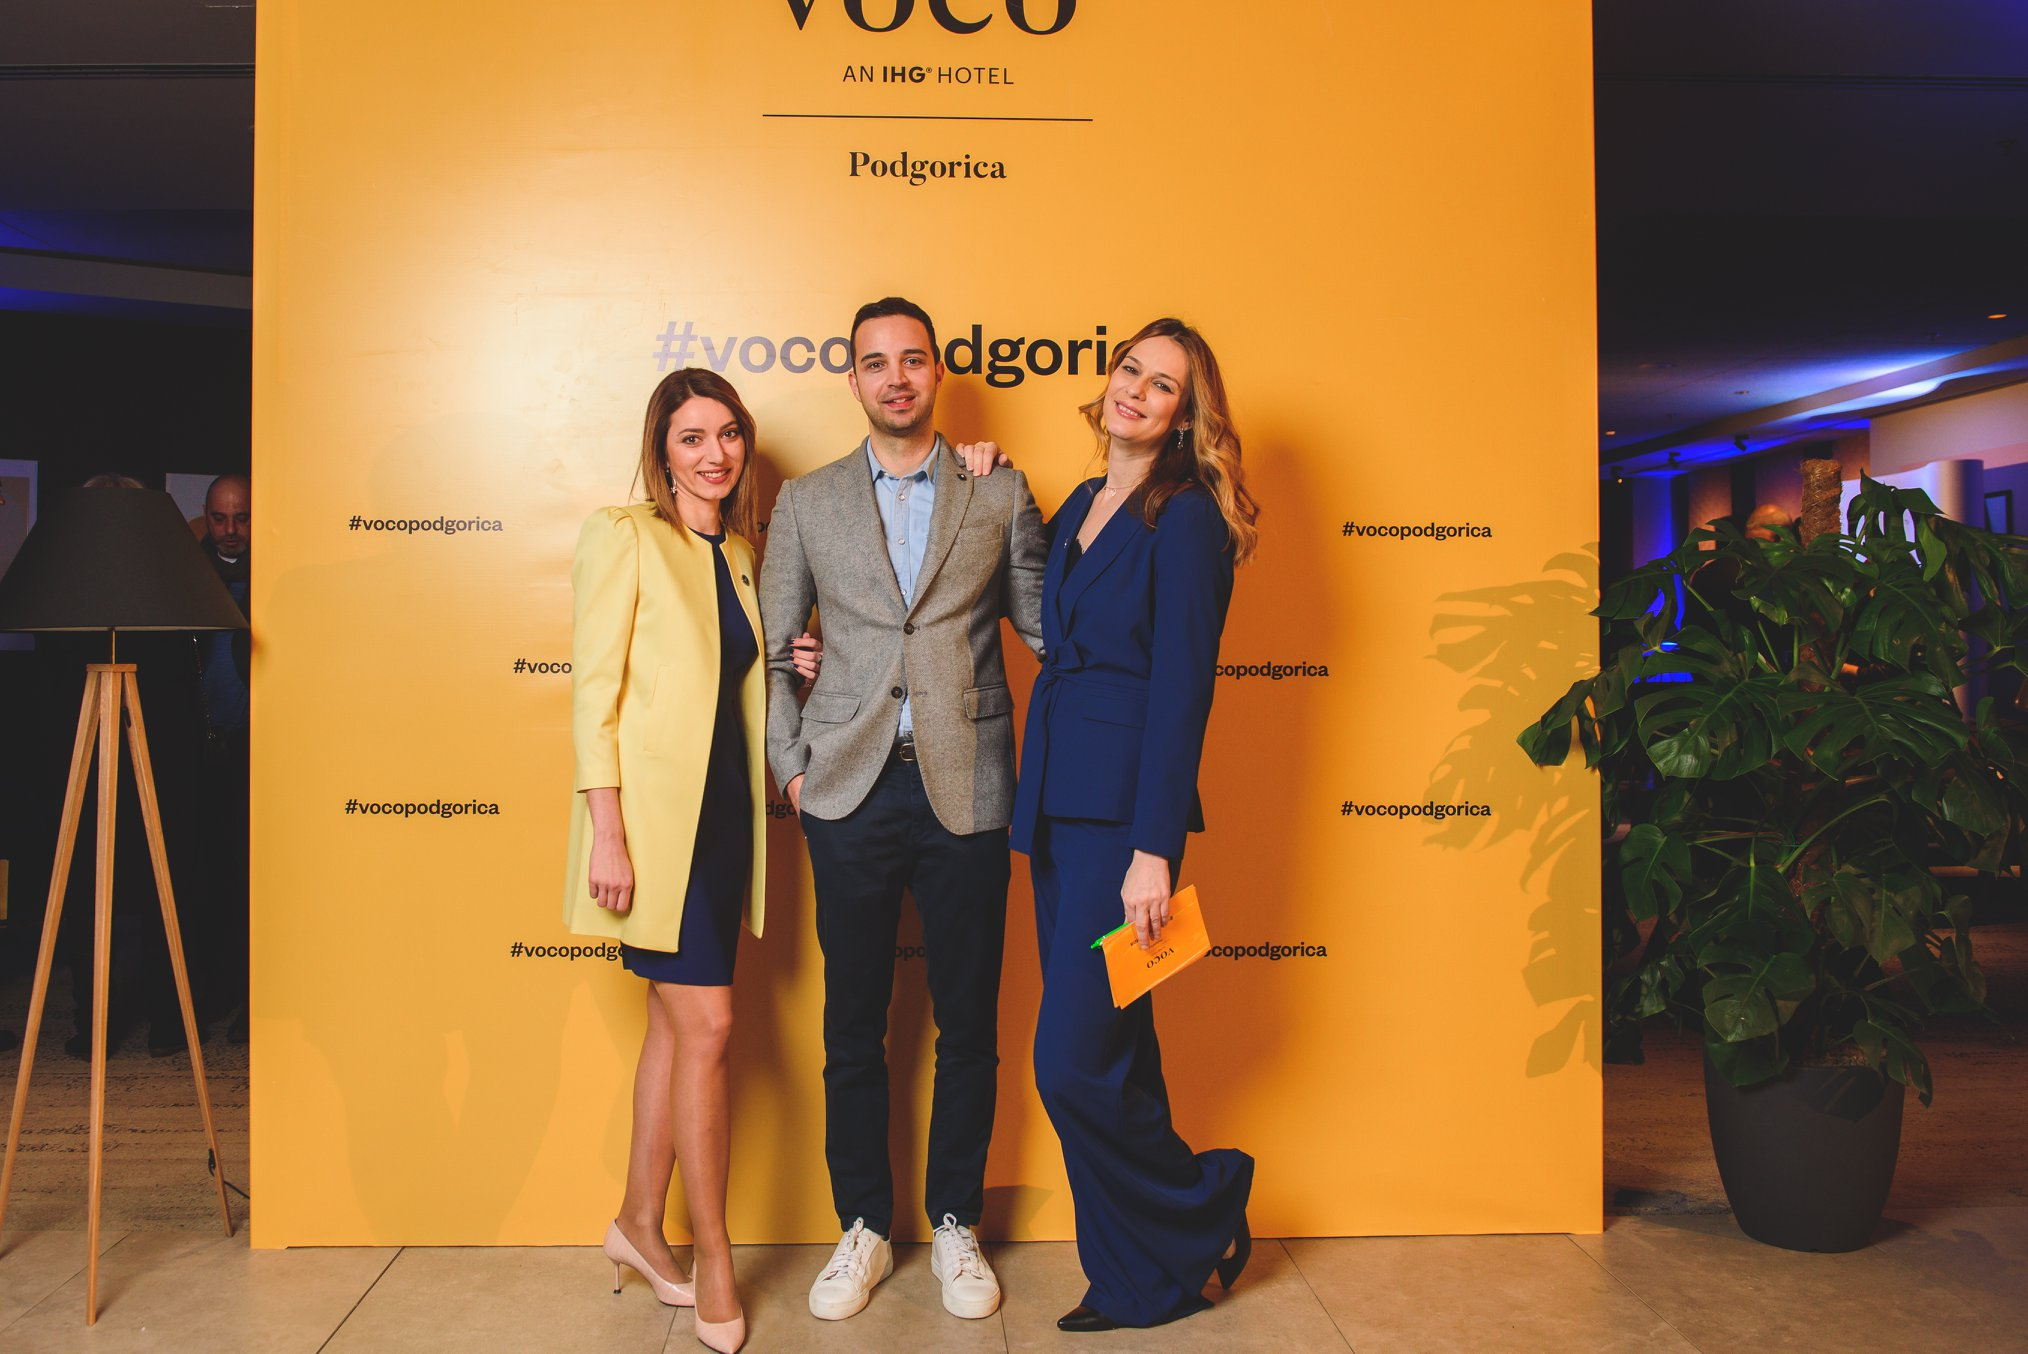 The arrival of the voco brand in Podgorica